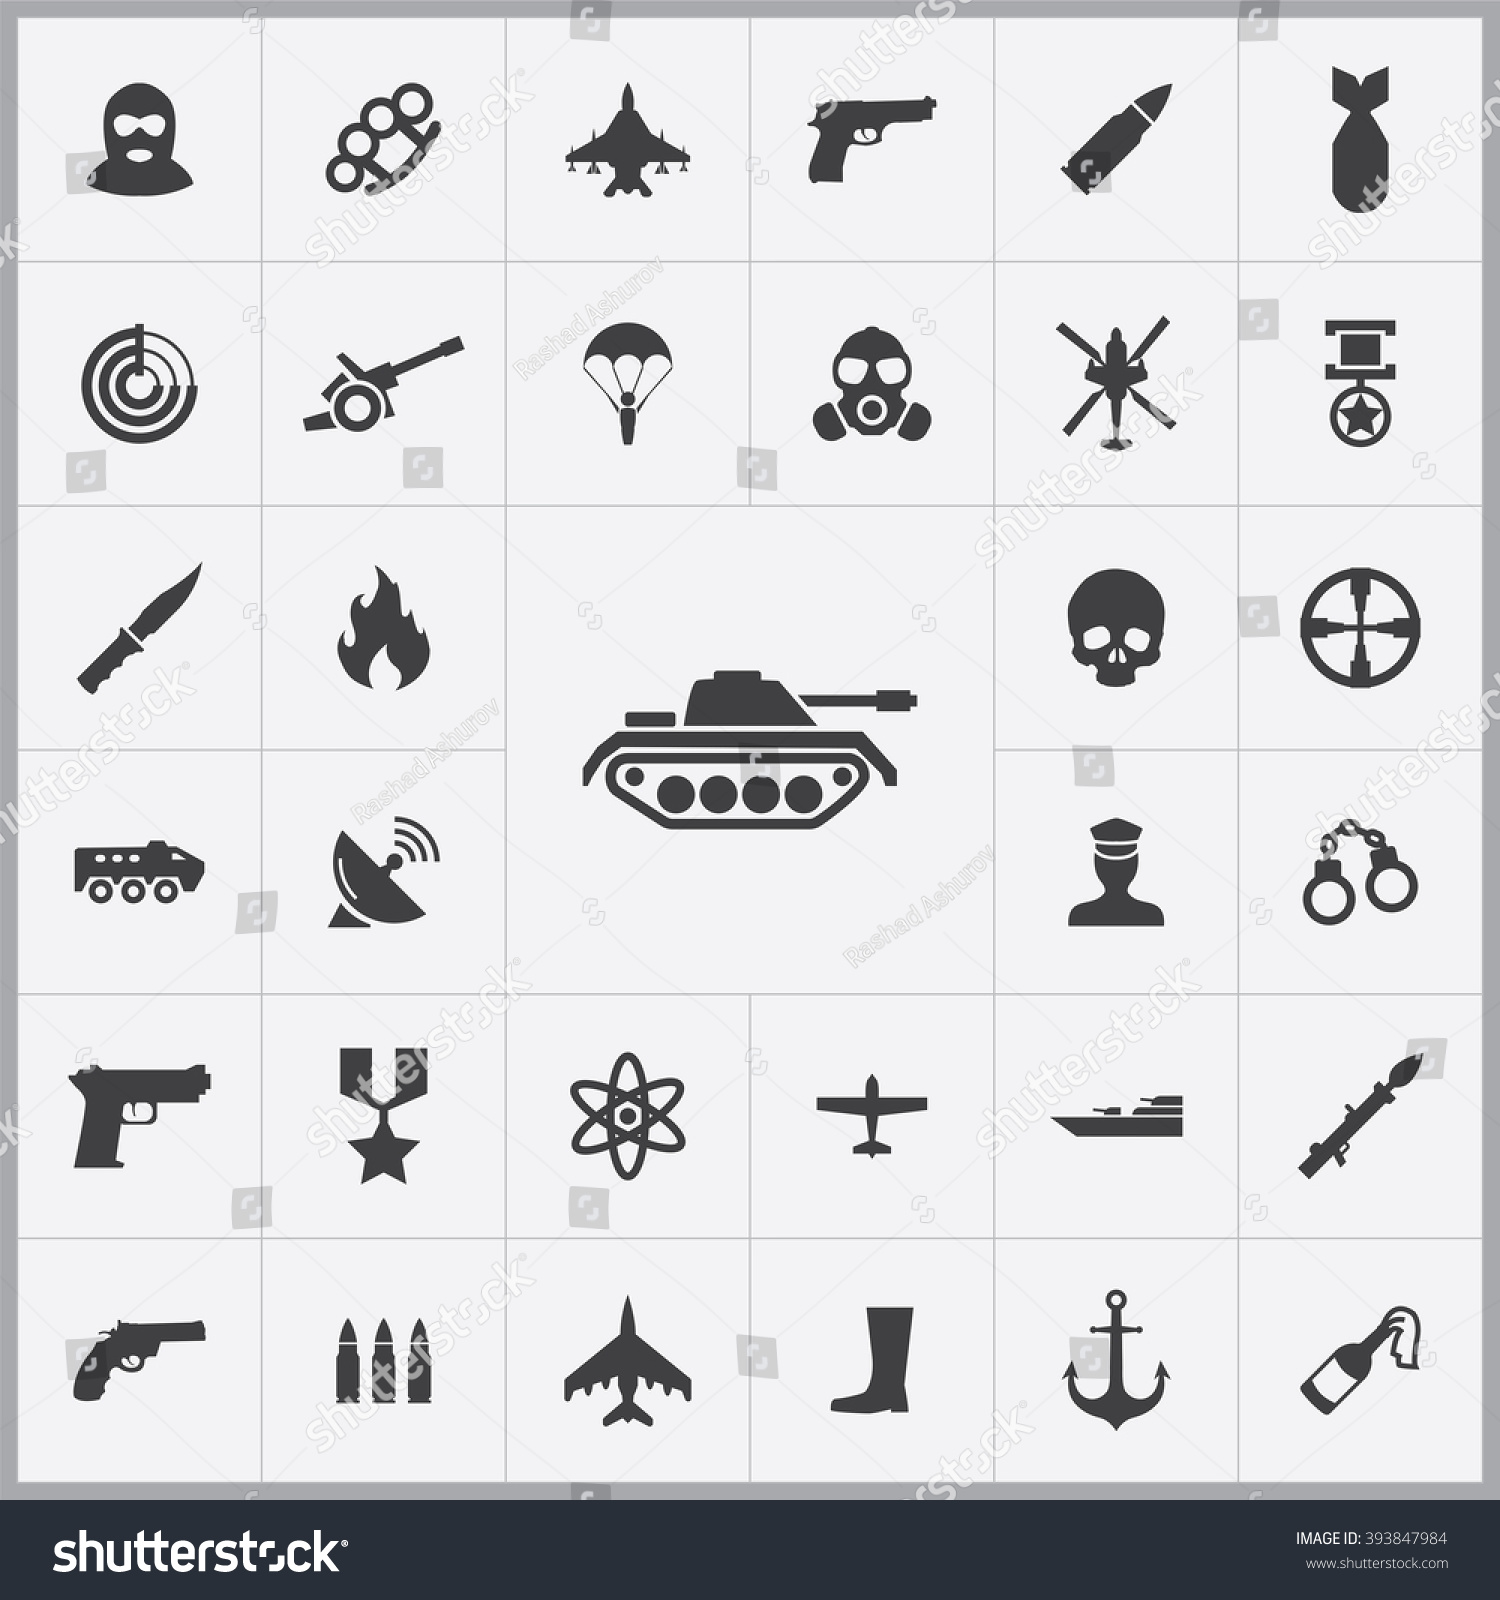 Simple war icons set universal war stock vector 393847984 shutterstock simple war icons set universal war icon to use for web and mobile ui biocorpaavc Images